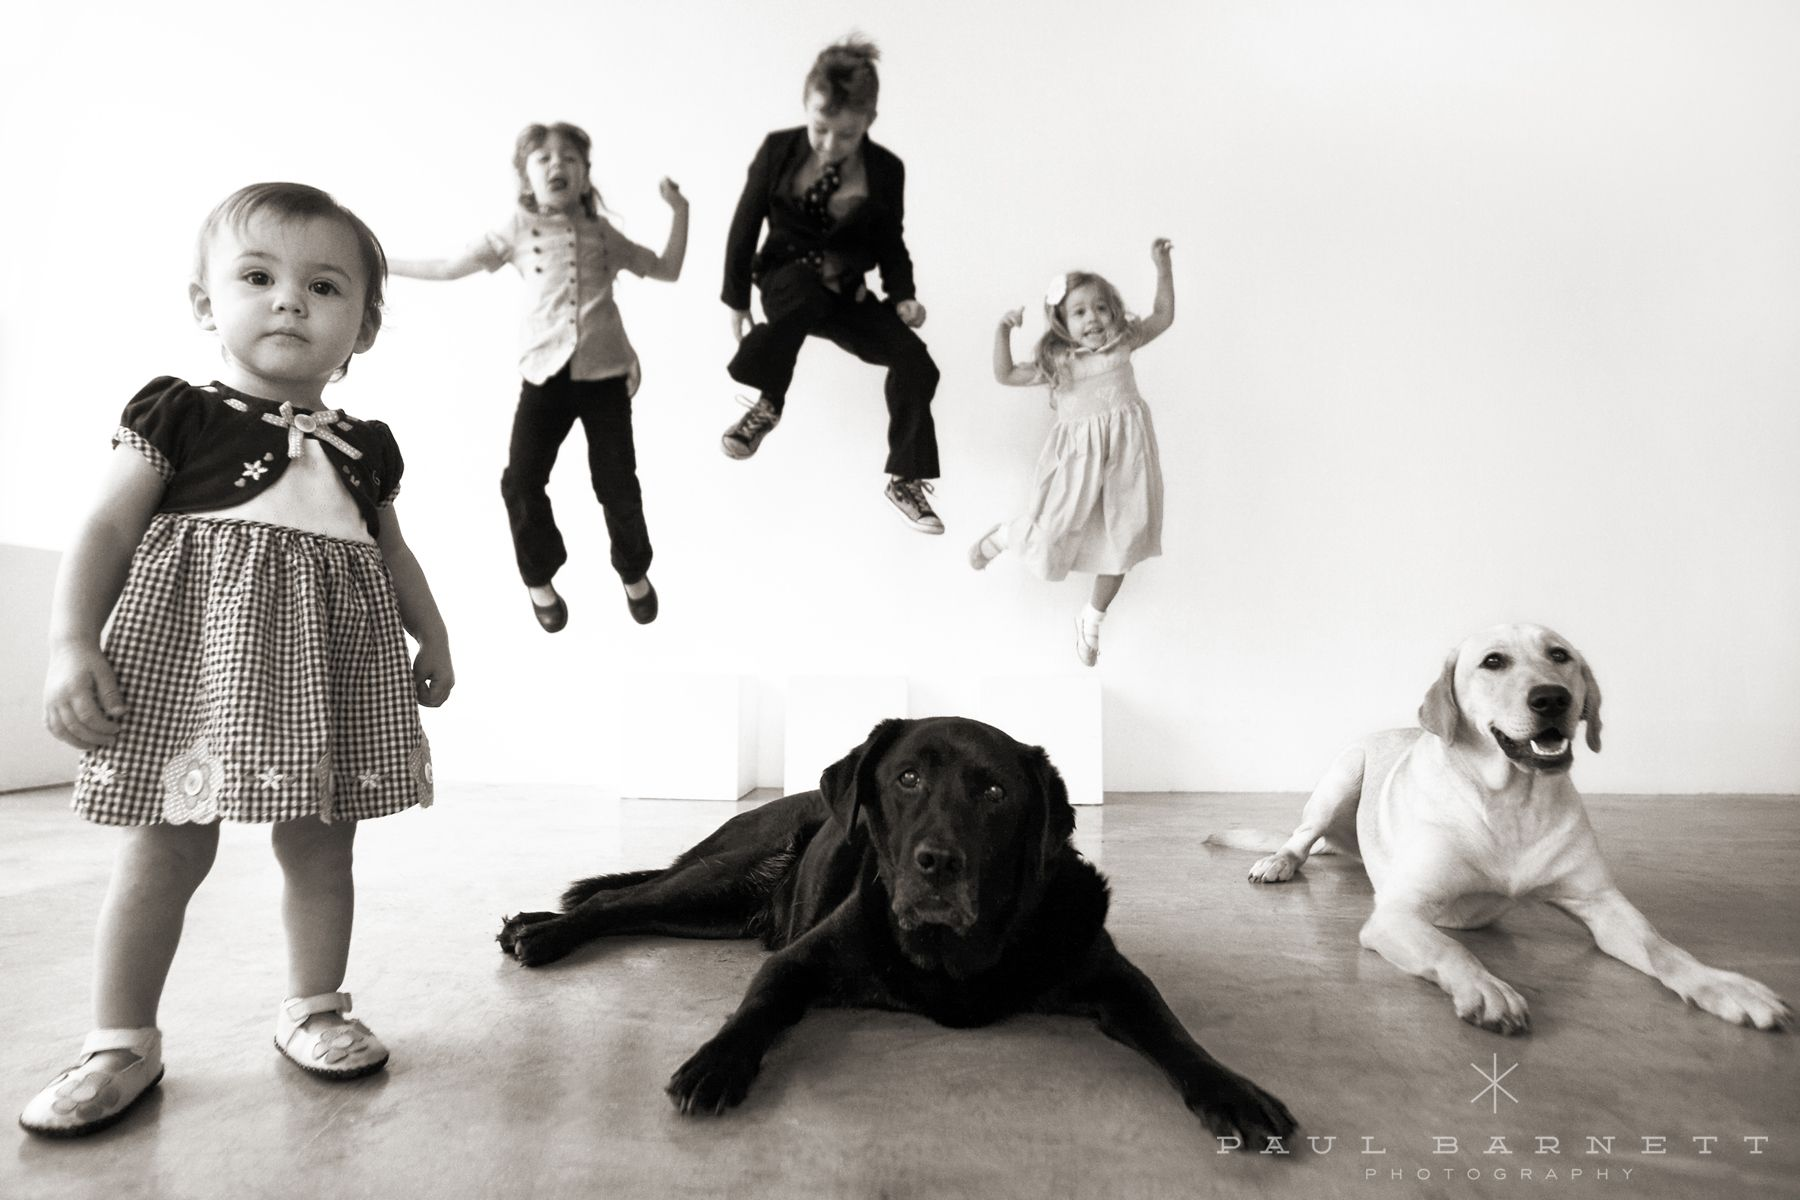 Kids and Dogs, Dogs and Kids. Fun portrait session.